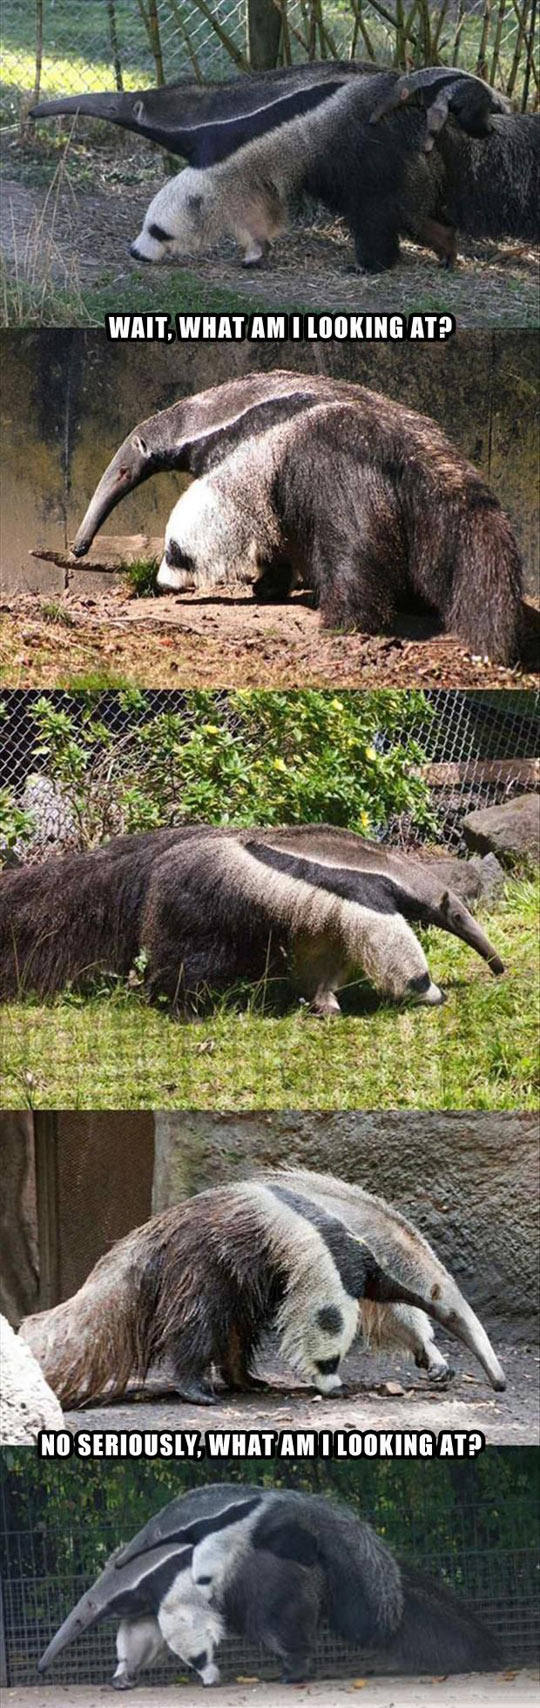 Anteaters are hard to figure out…